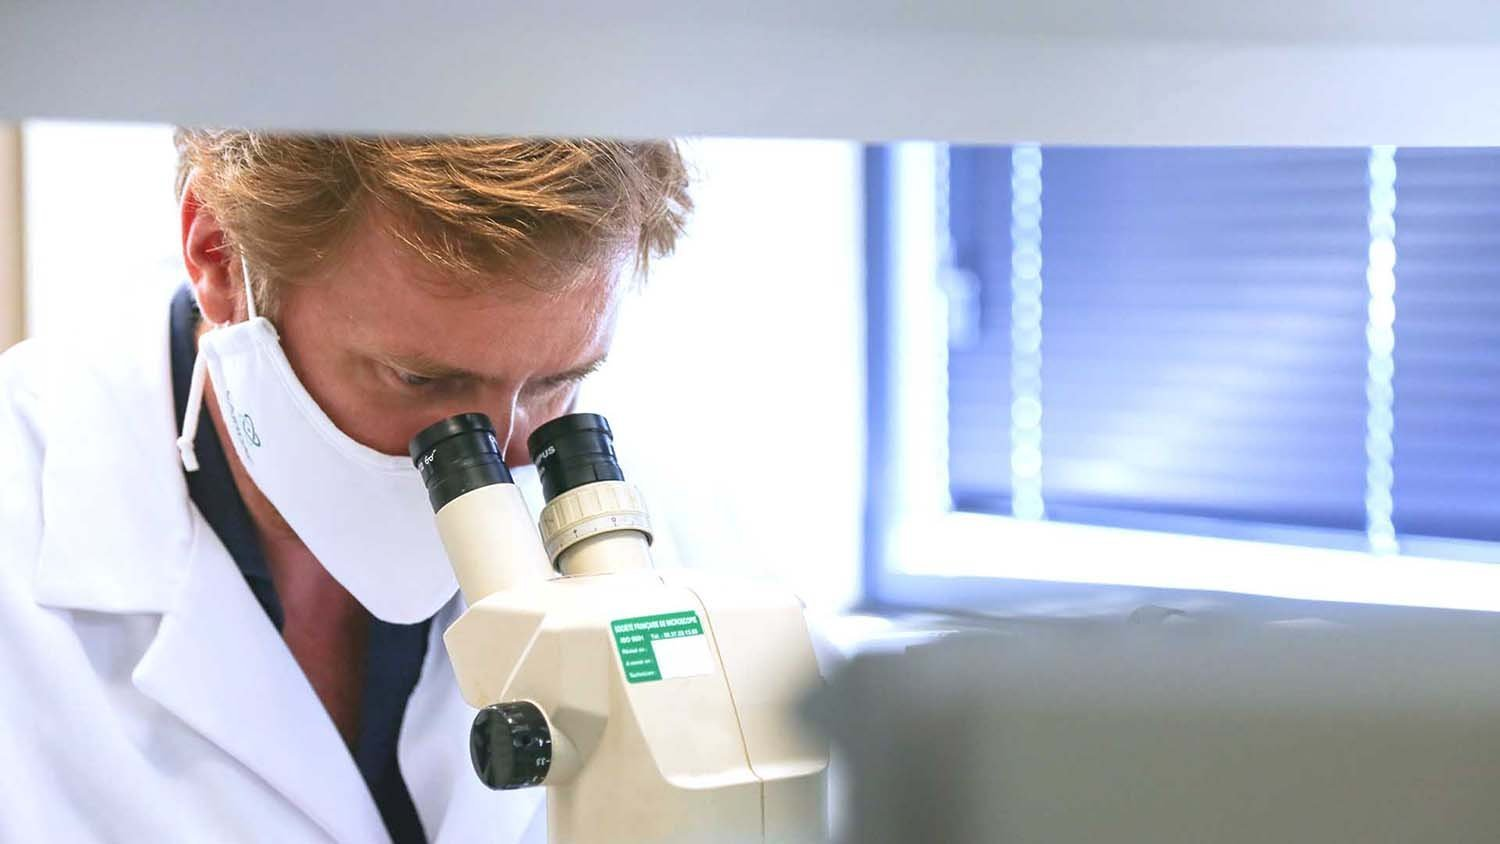 Laboratory men looking in a microscope